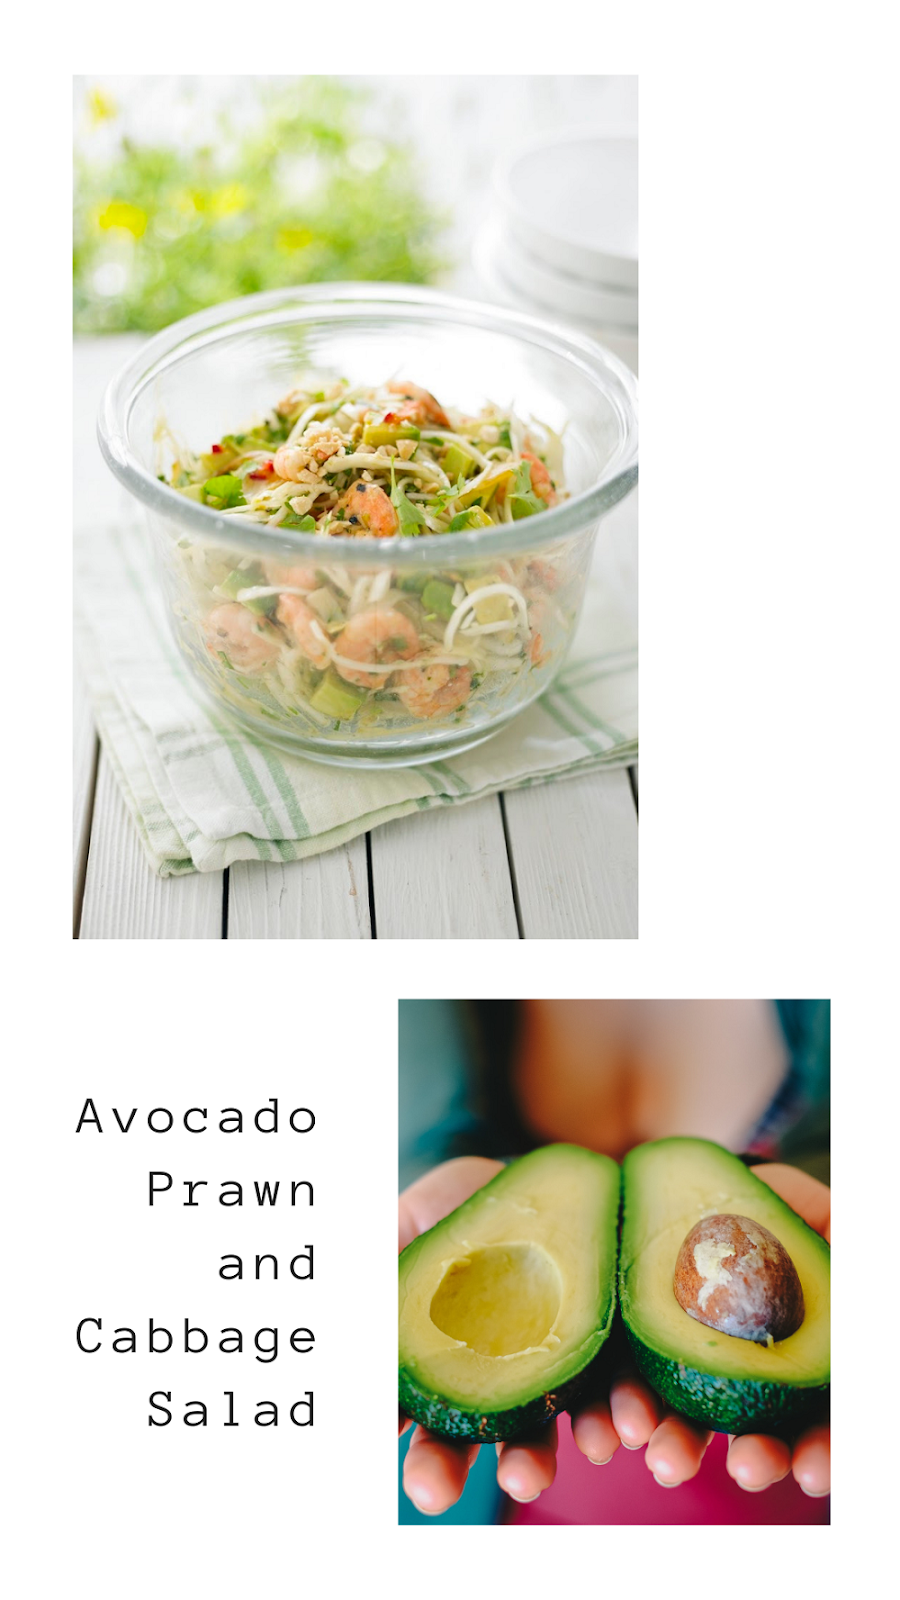 Avocado, Prawn and Cabbage Salad.